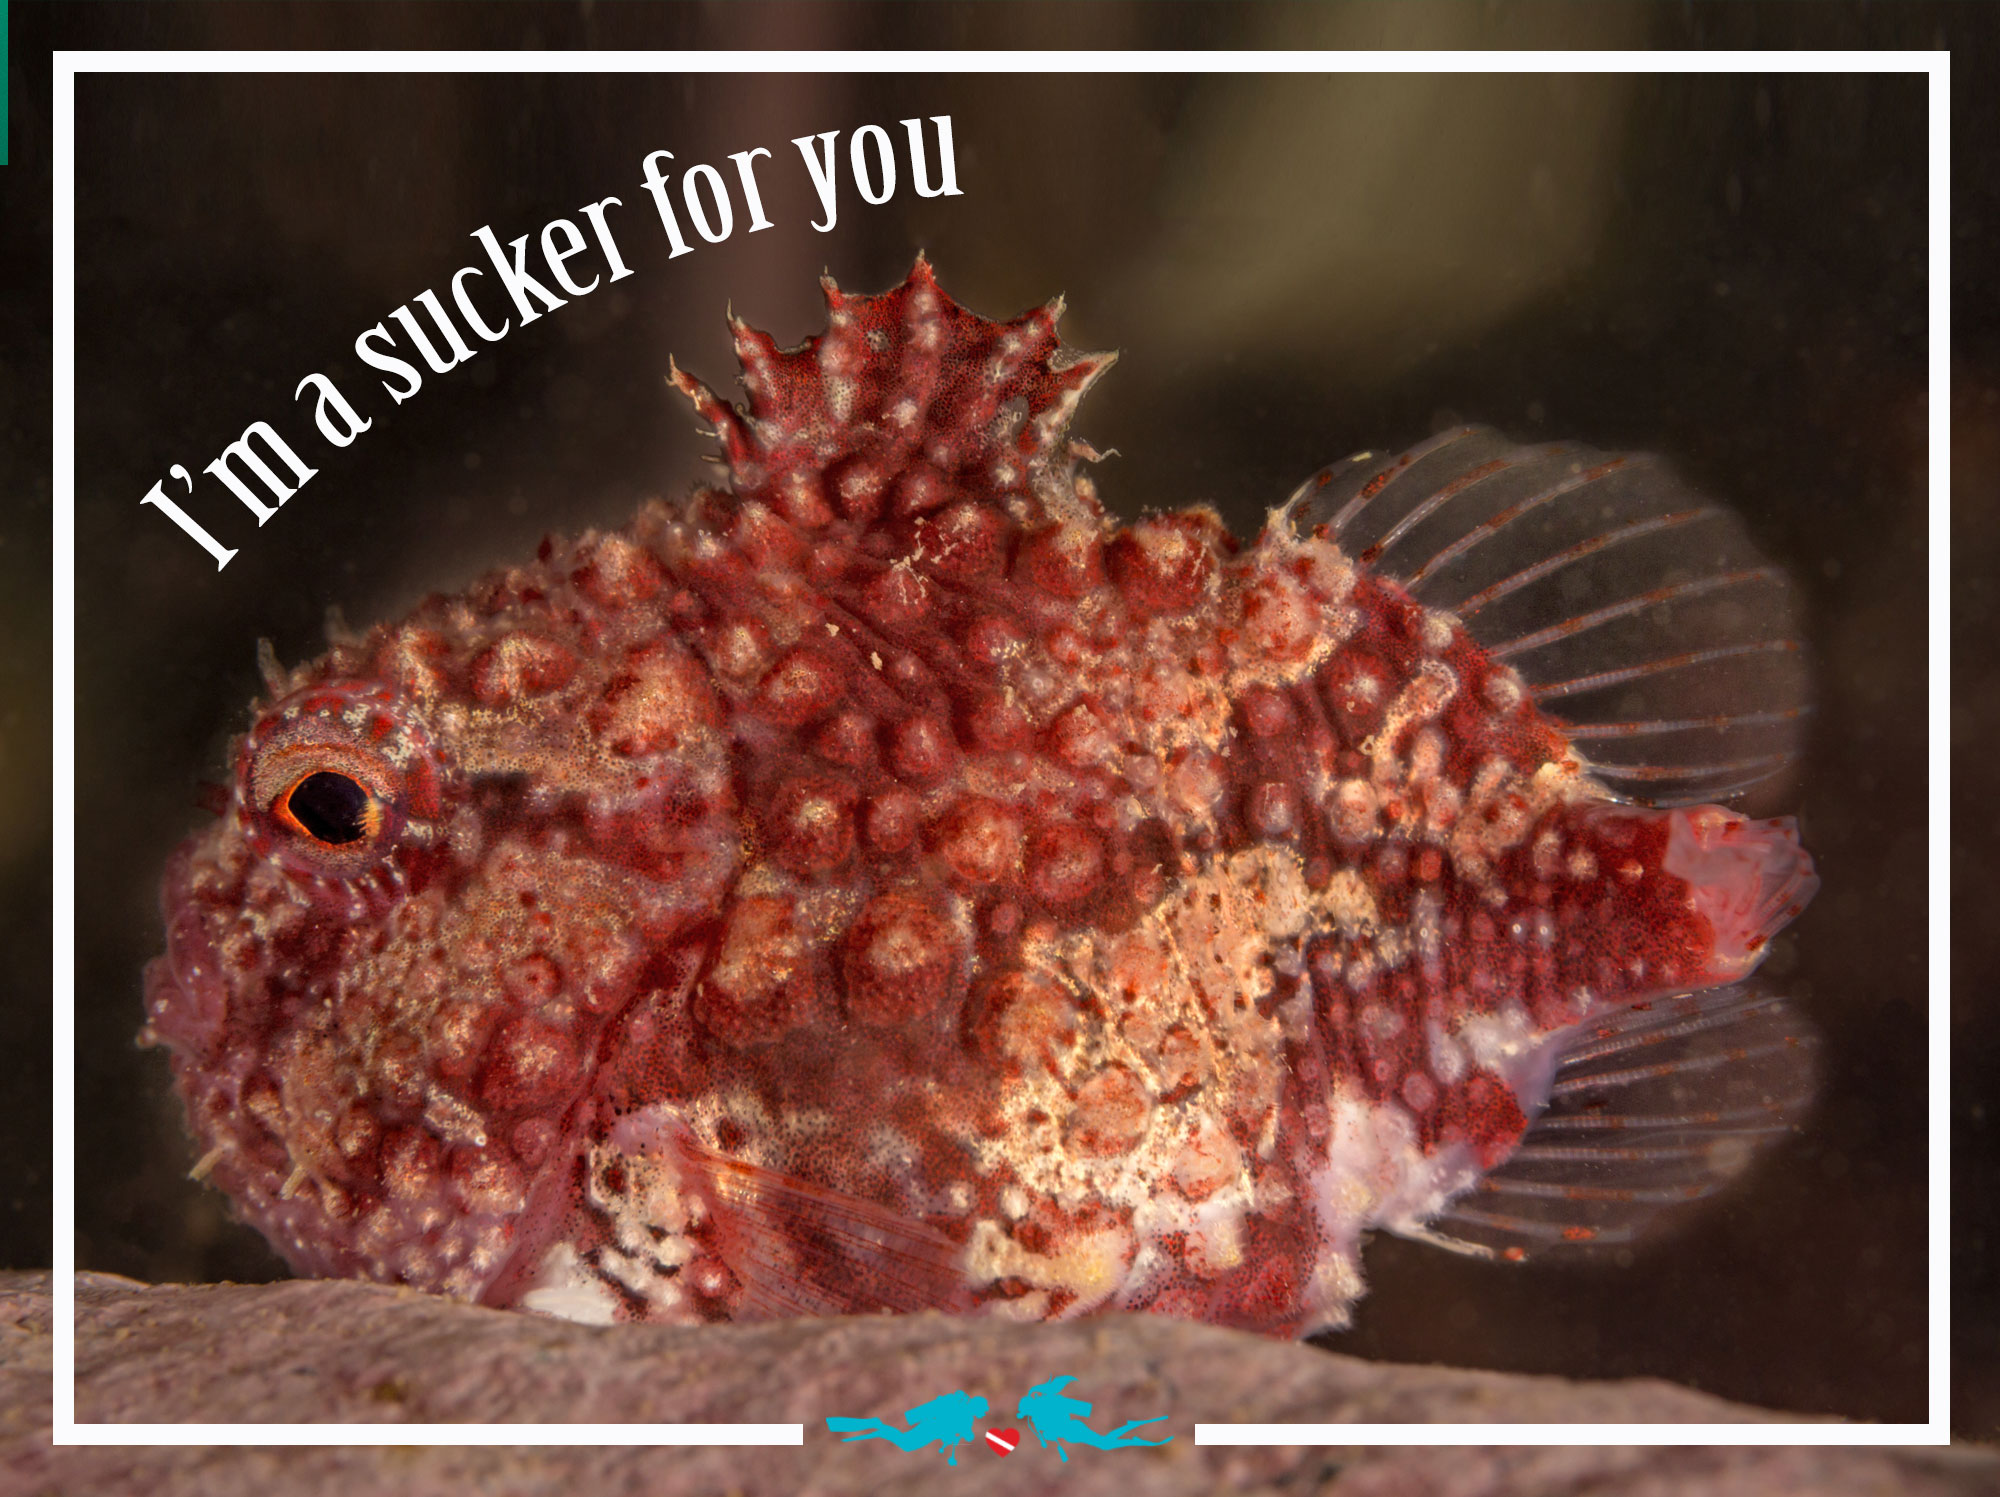 Spiny Lumpsucker Valentine's Day Scuba Diving Quote